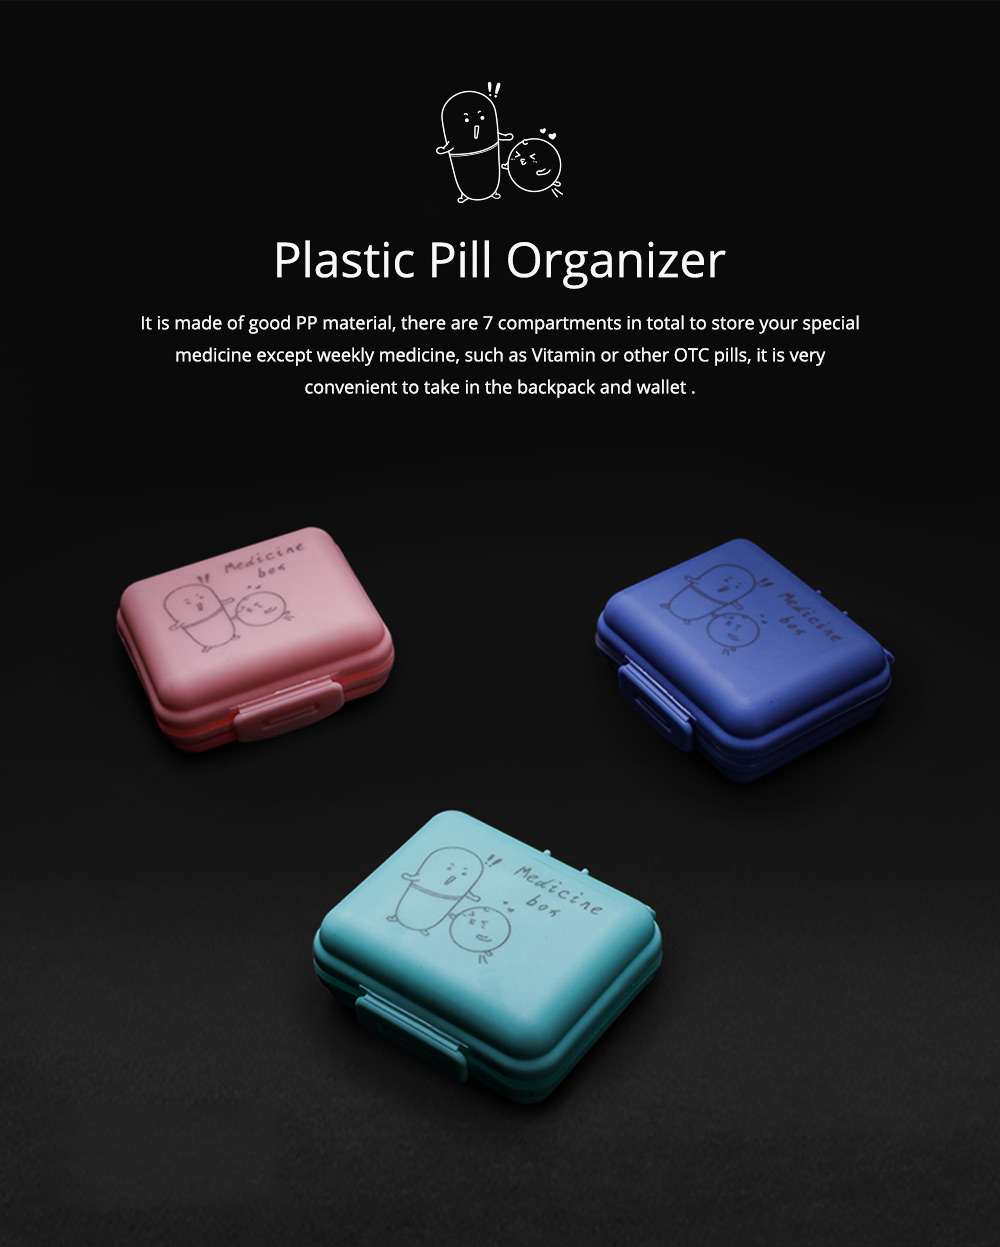 Cute Pill Box Portable 7 Compartments Medicine, Vitamin Plastic Pill Organizer BPA Free for Kids, Elderly 0